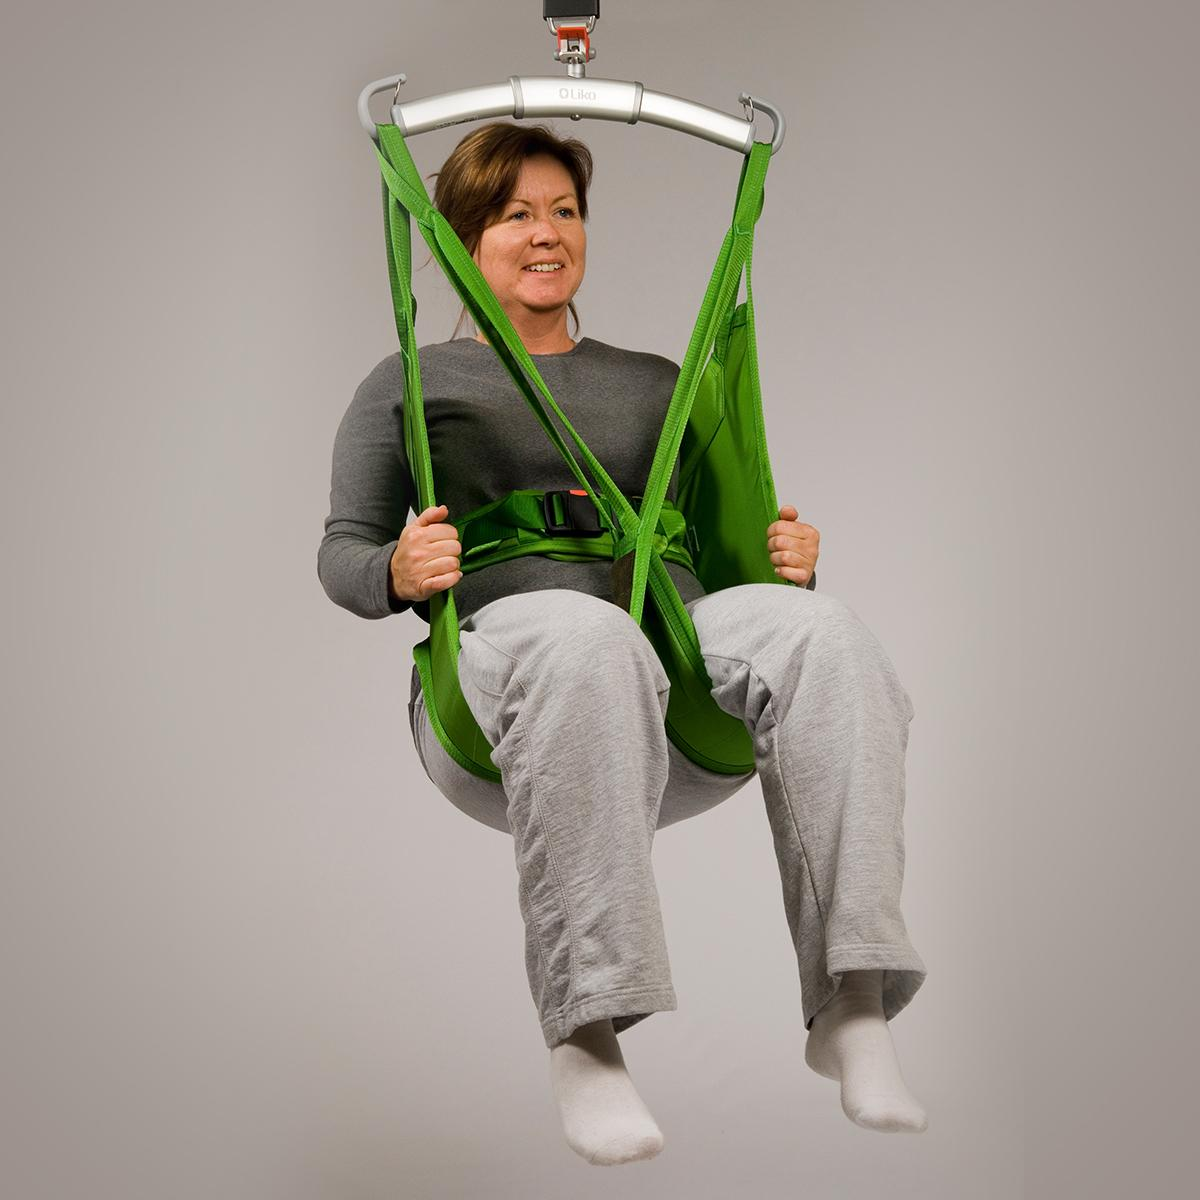 A patient in a seated position smiles in a Hillrom Hygiene sling